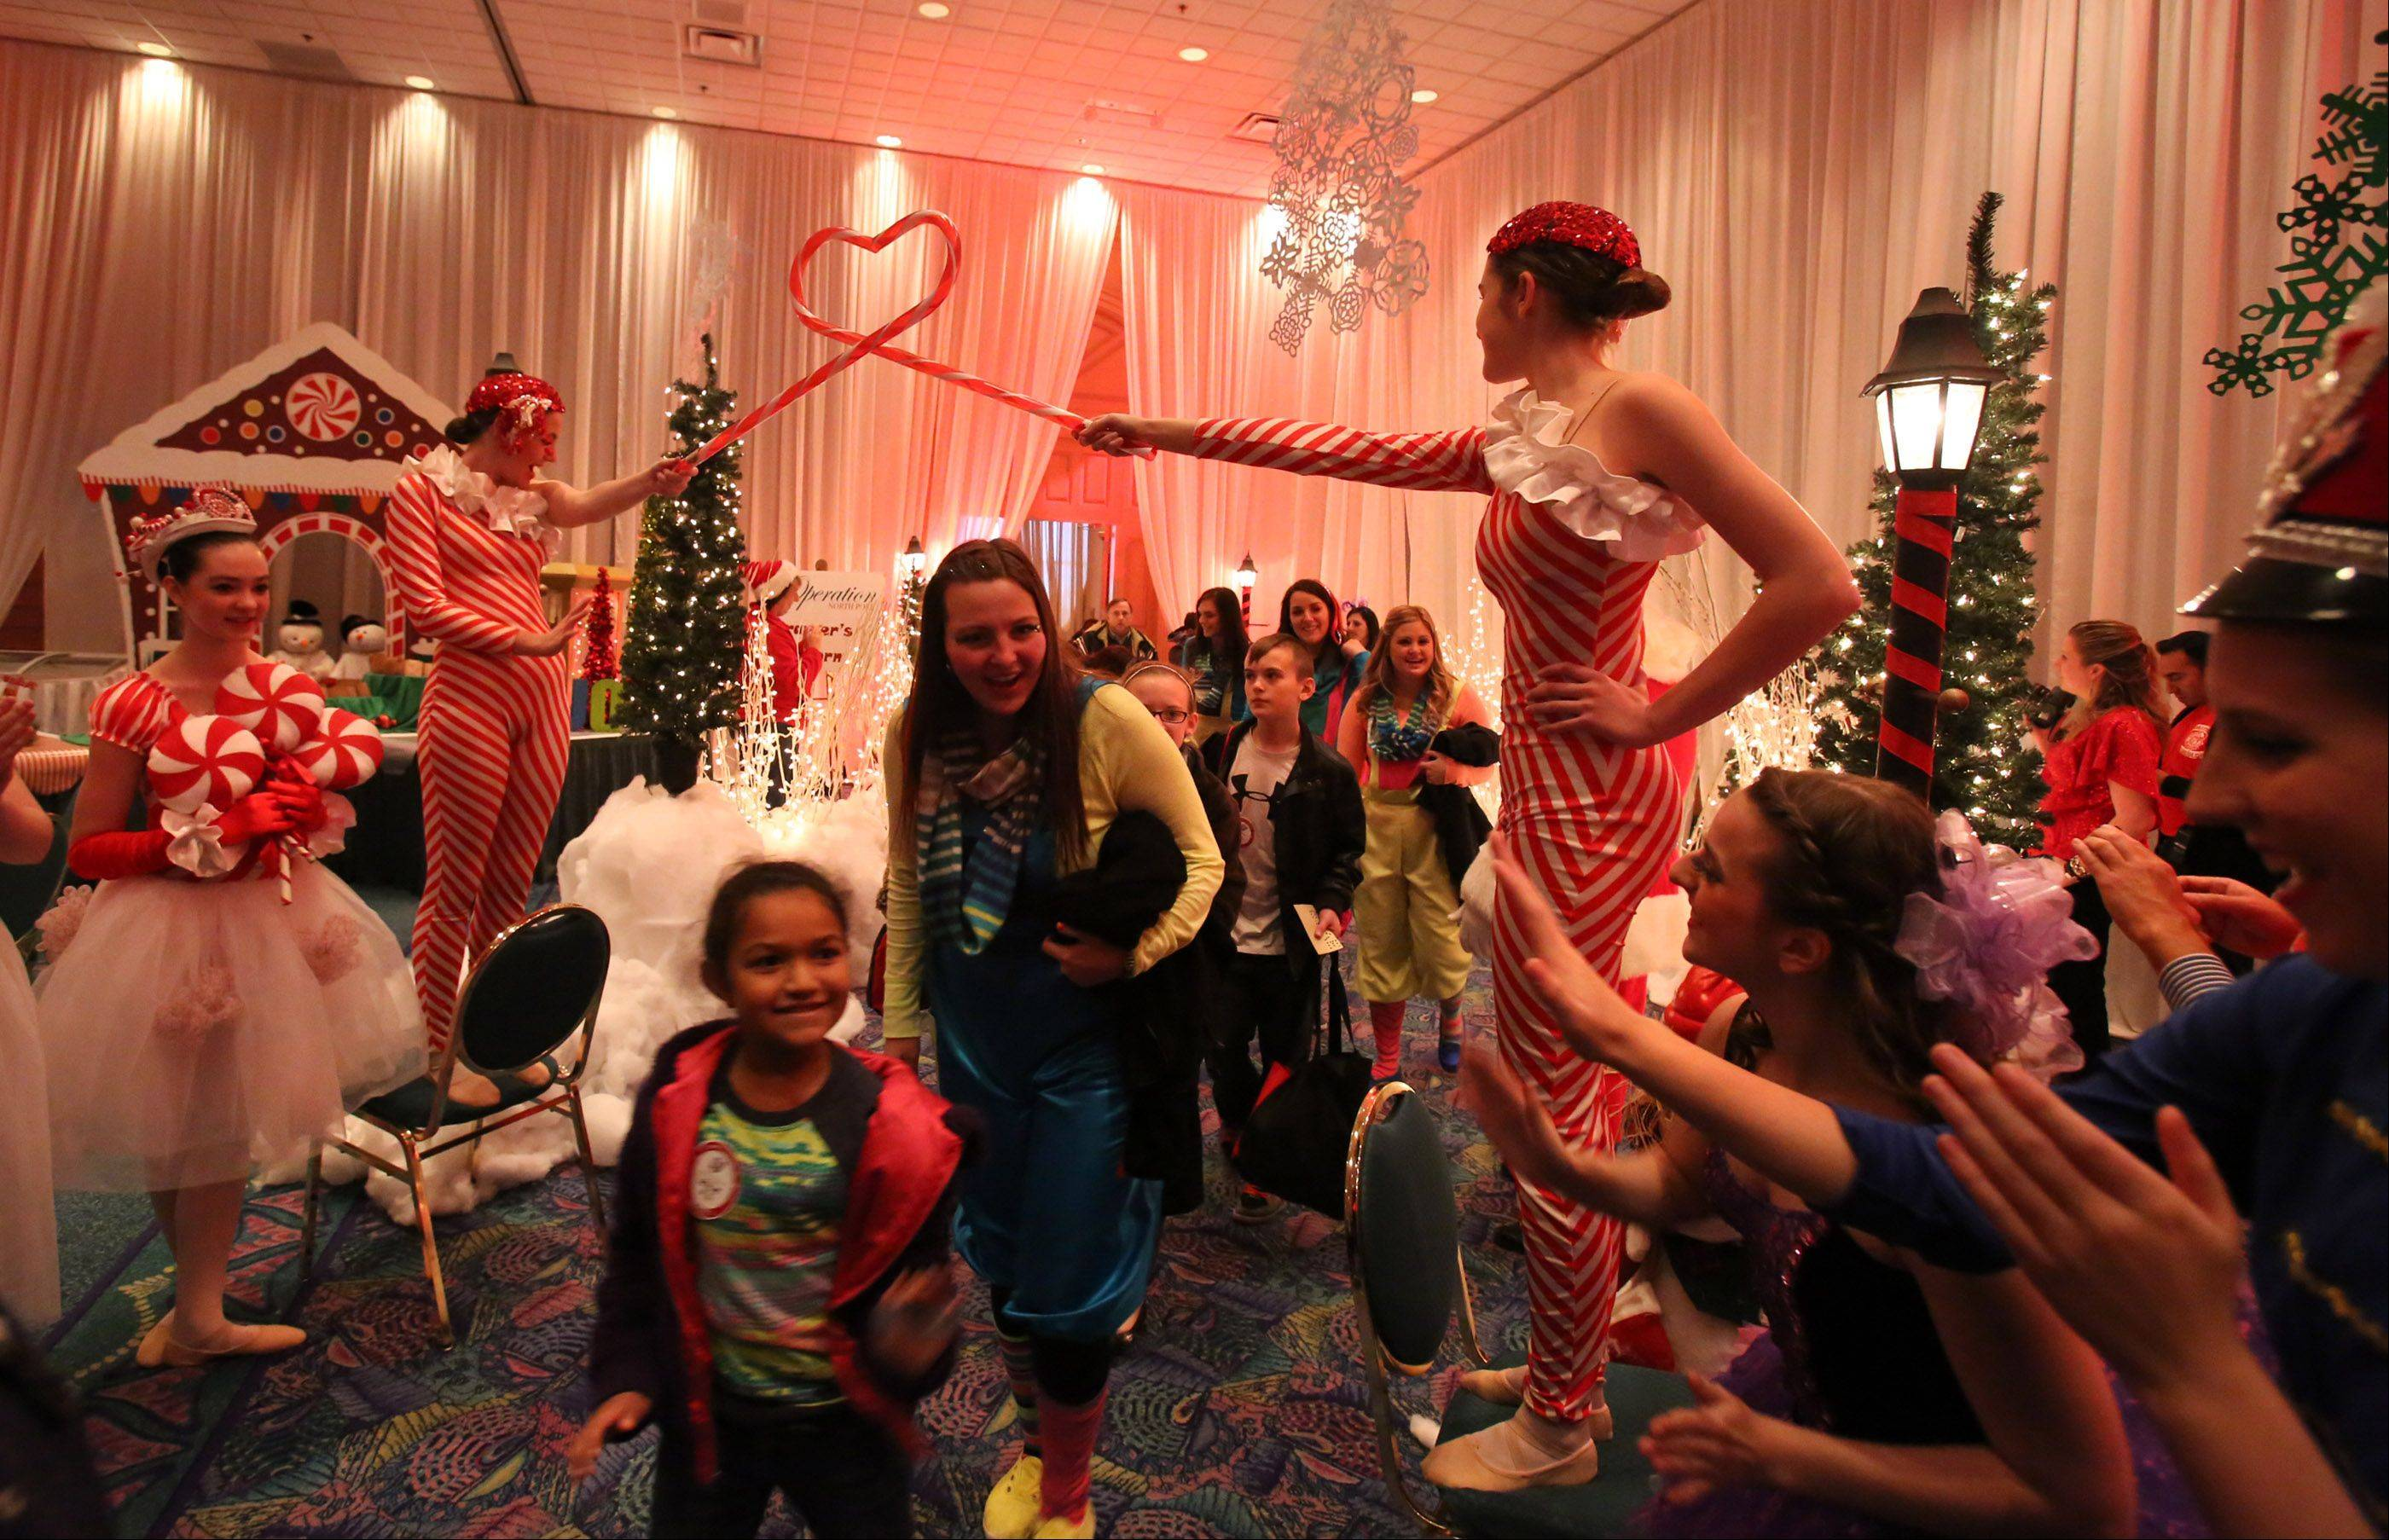 Families are led into Santa's Winter Wonderland during Operation North Pole Saturday at the Donald E. Stephens Convention Center in Rosemont.